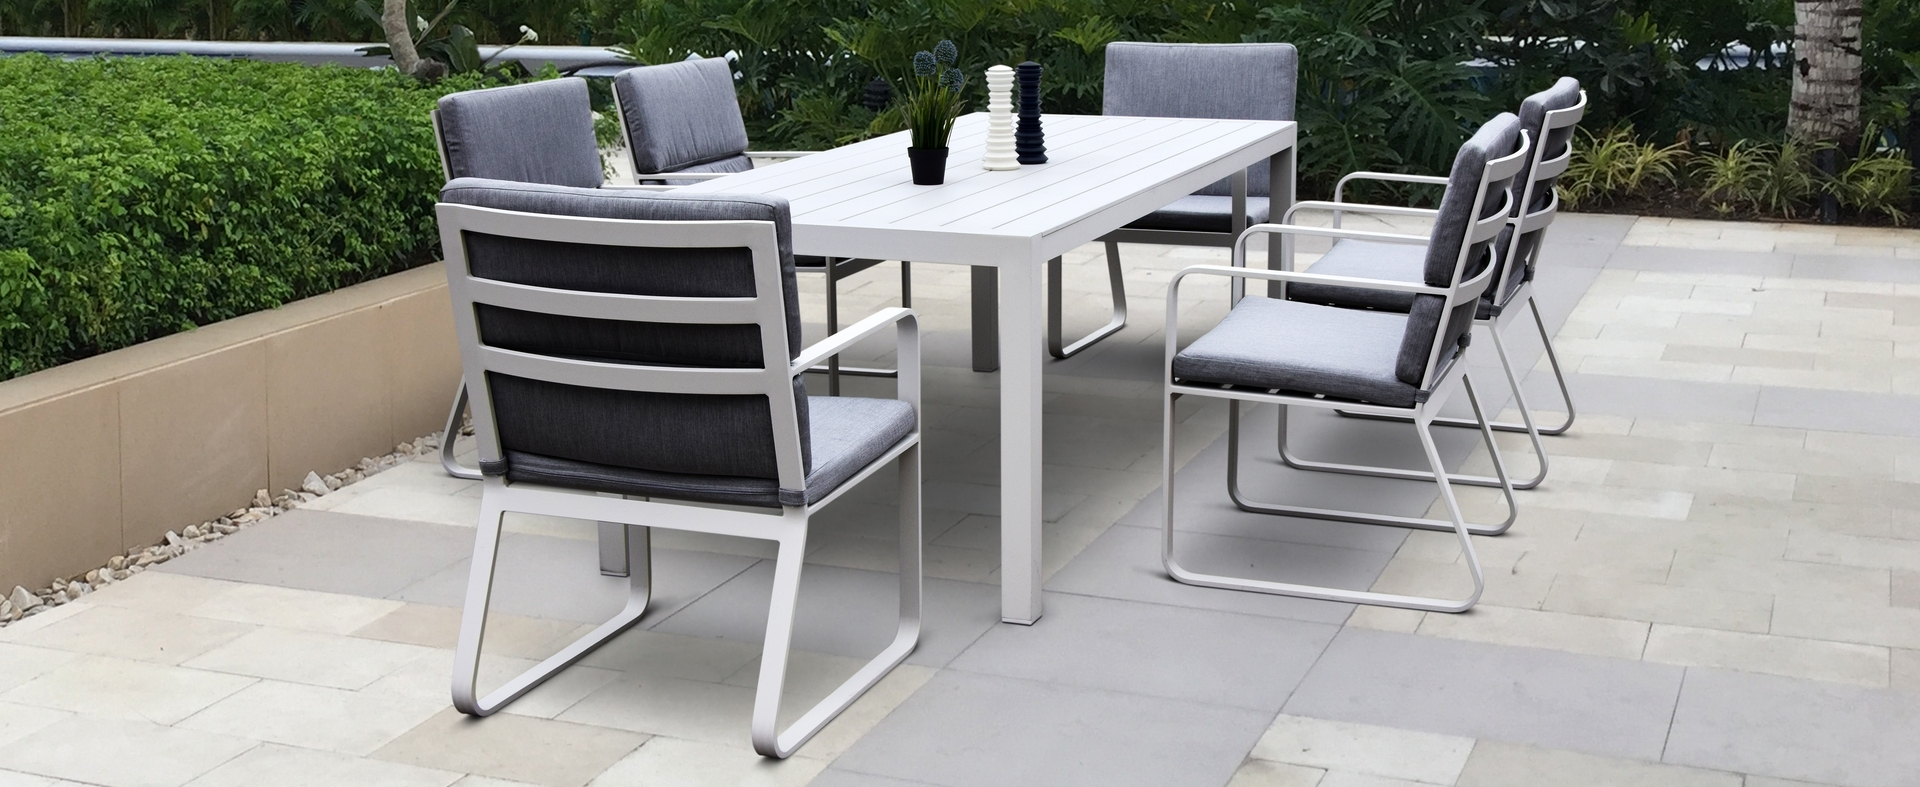 Nice Modern Aluminum Outdoor Furniture Ab Collections Cast Patio Inside Favorite Modern Patio Conversation Sets (View 14 of 15)